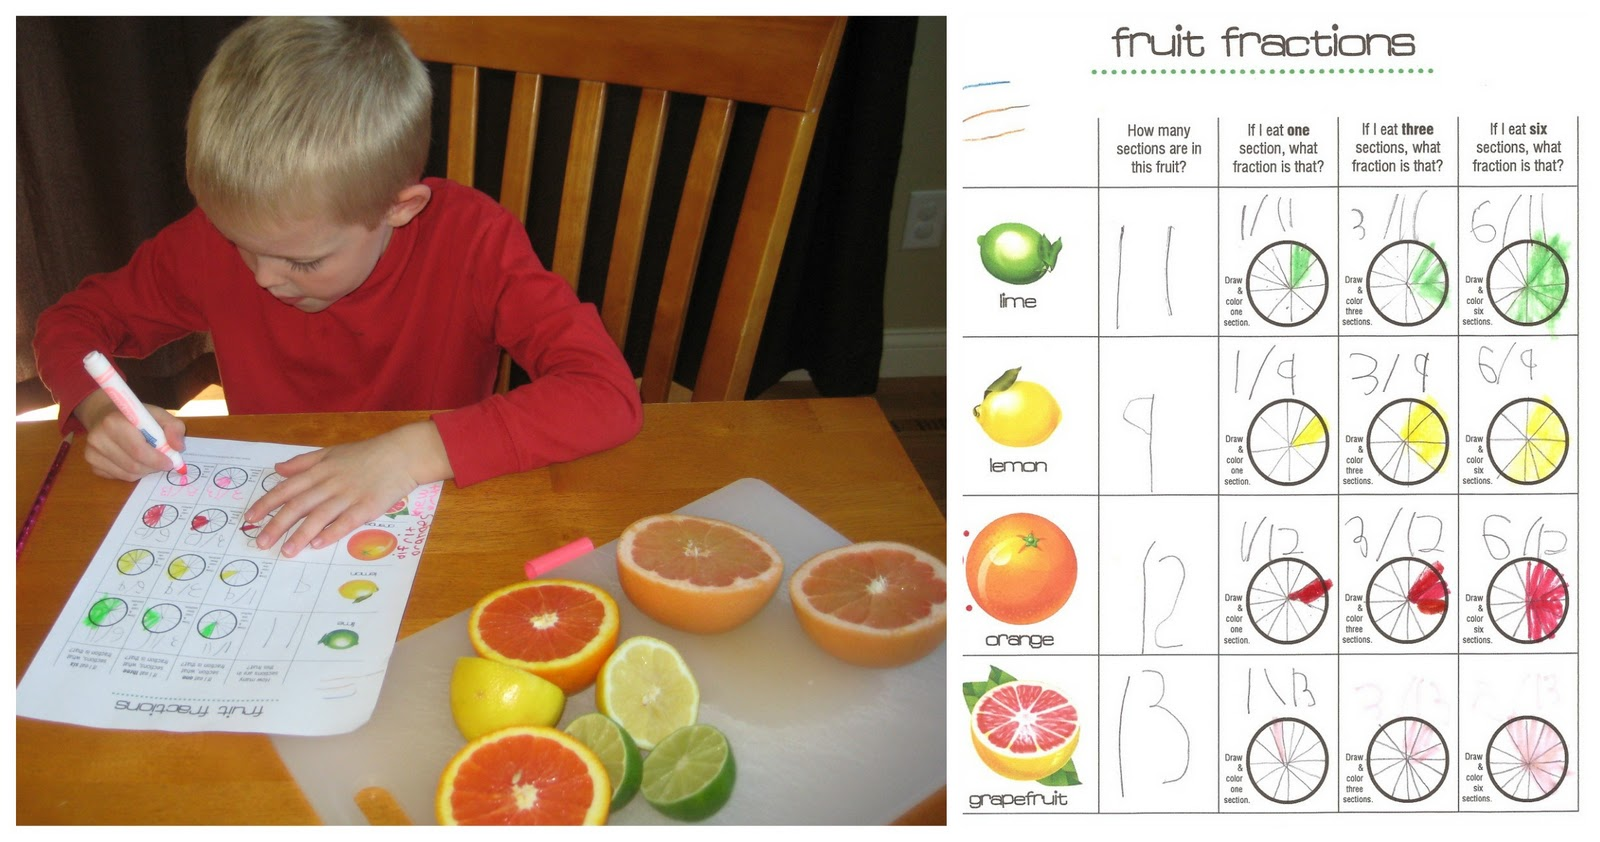 Boy Doing Fruit Fractions